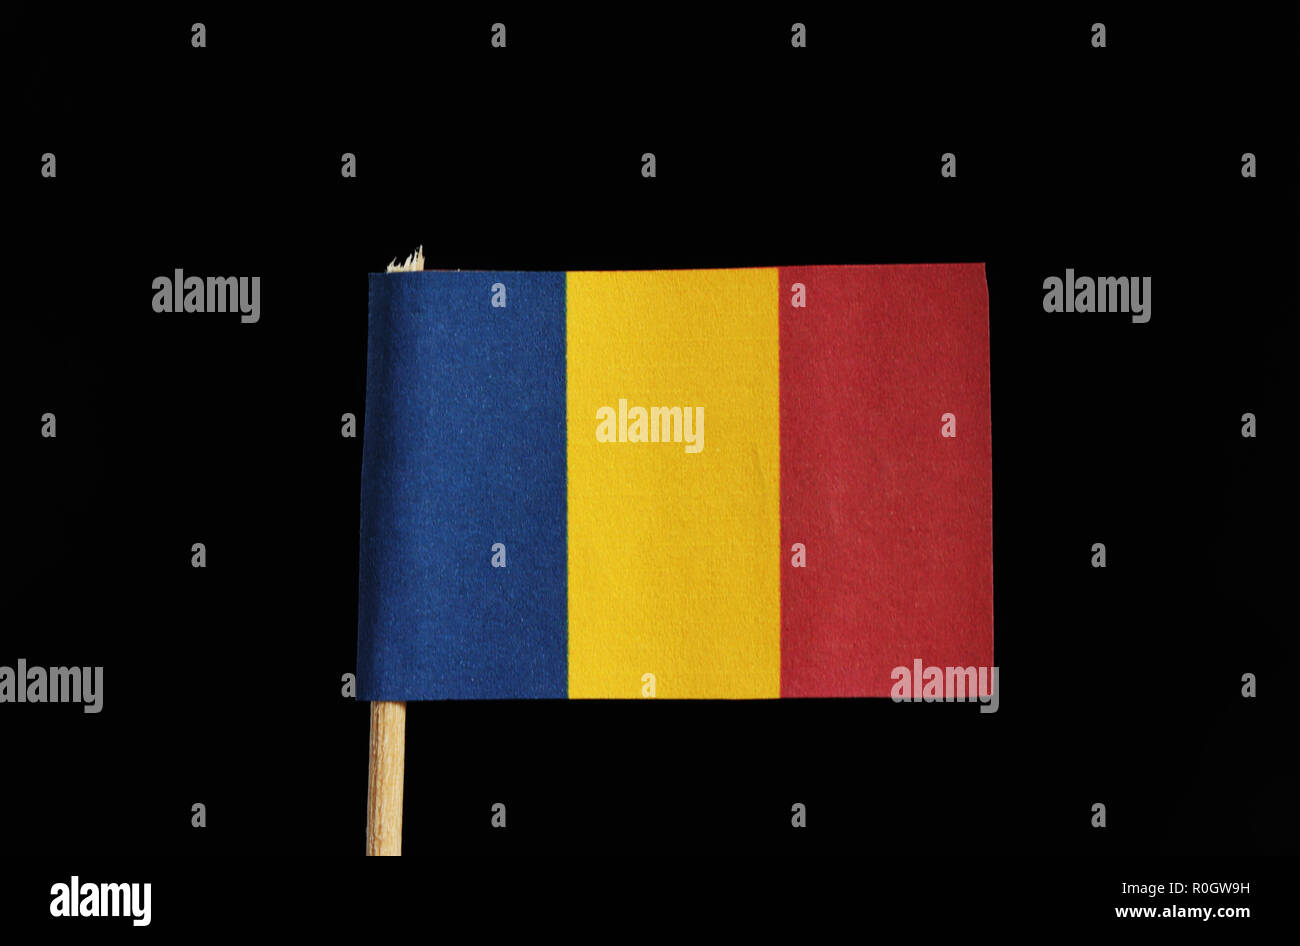 A national flag of Chad on toothpick on black background. A vertical tricolor of blue, gold and red - Stock Image